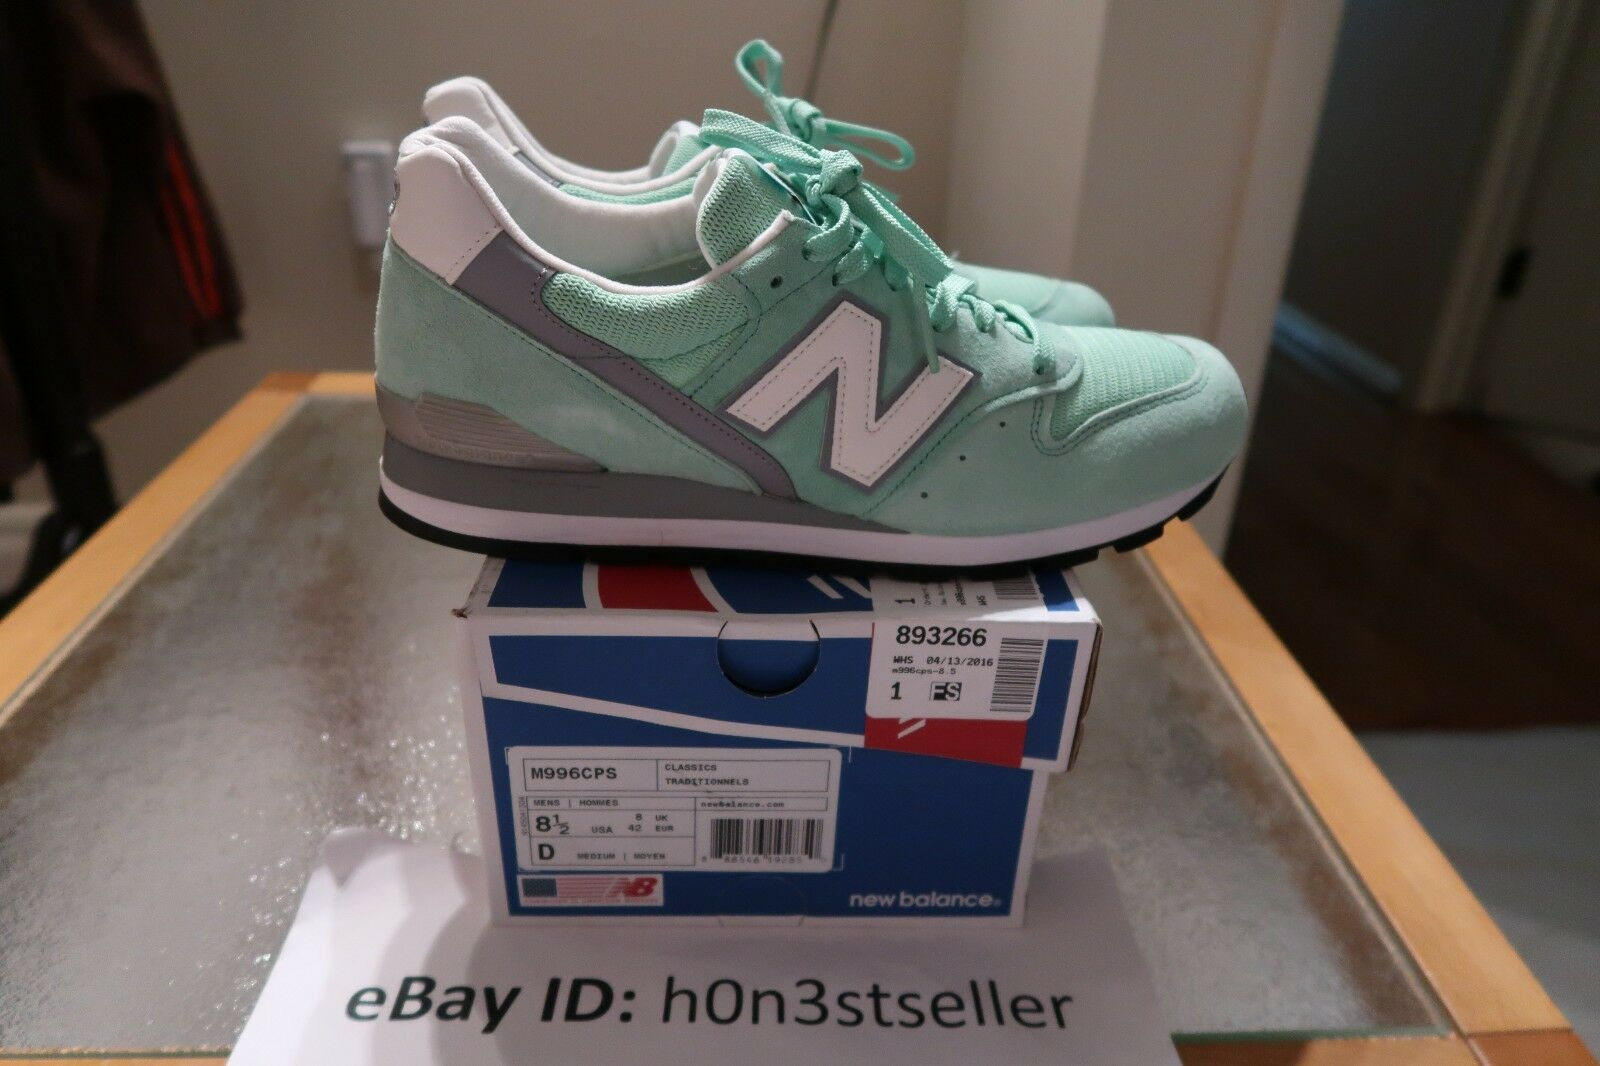 New Balance 996 'M996CPS' sneakers shoes   US Men's Size 8.5